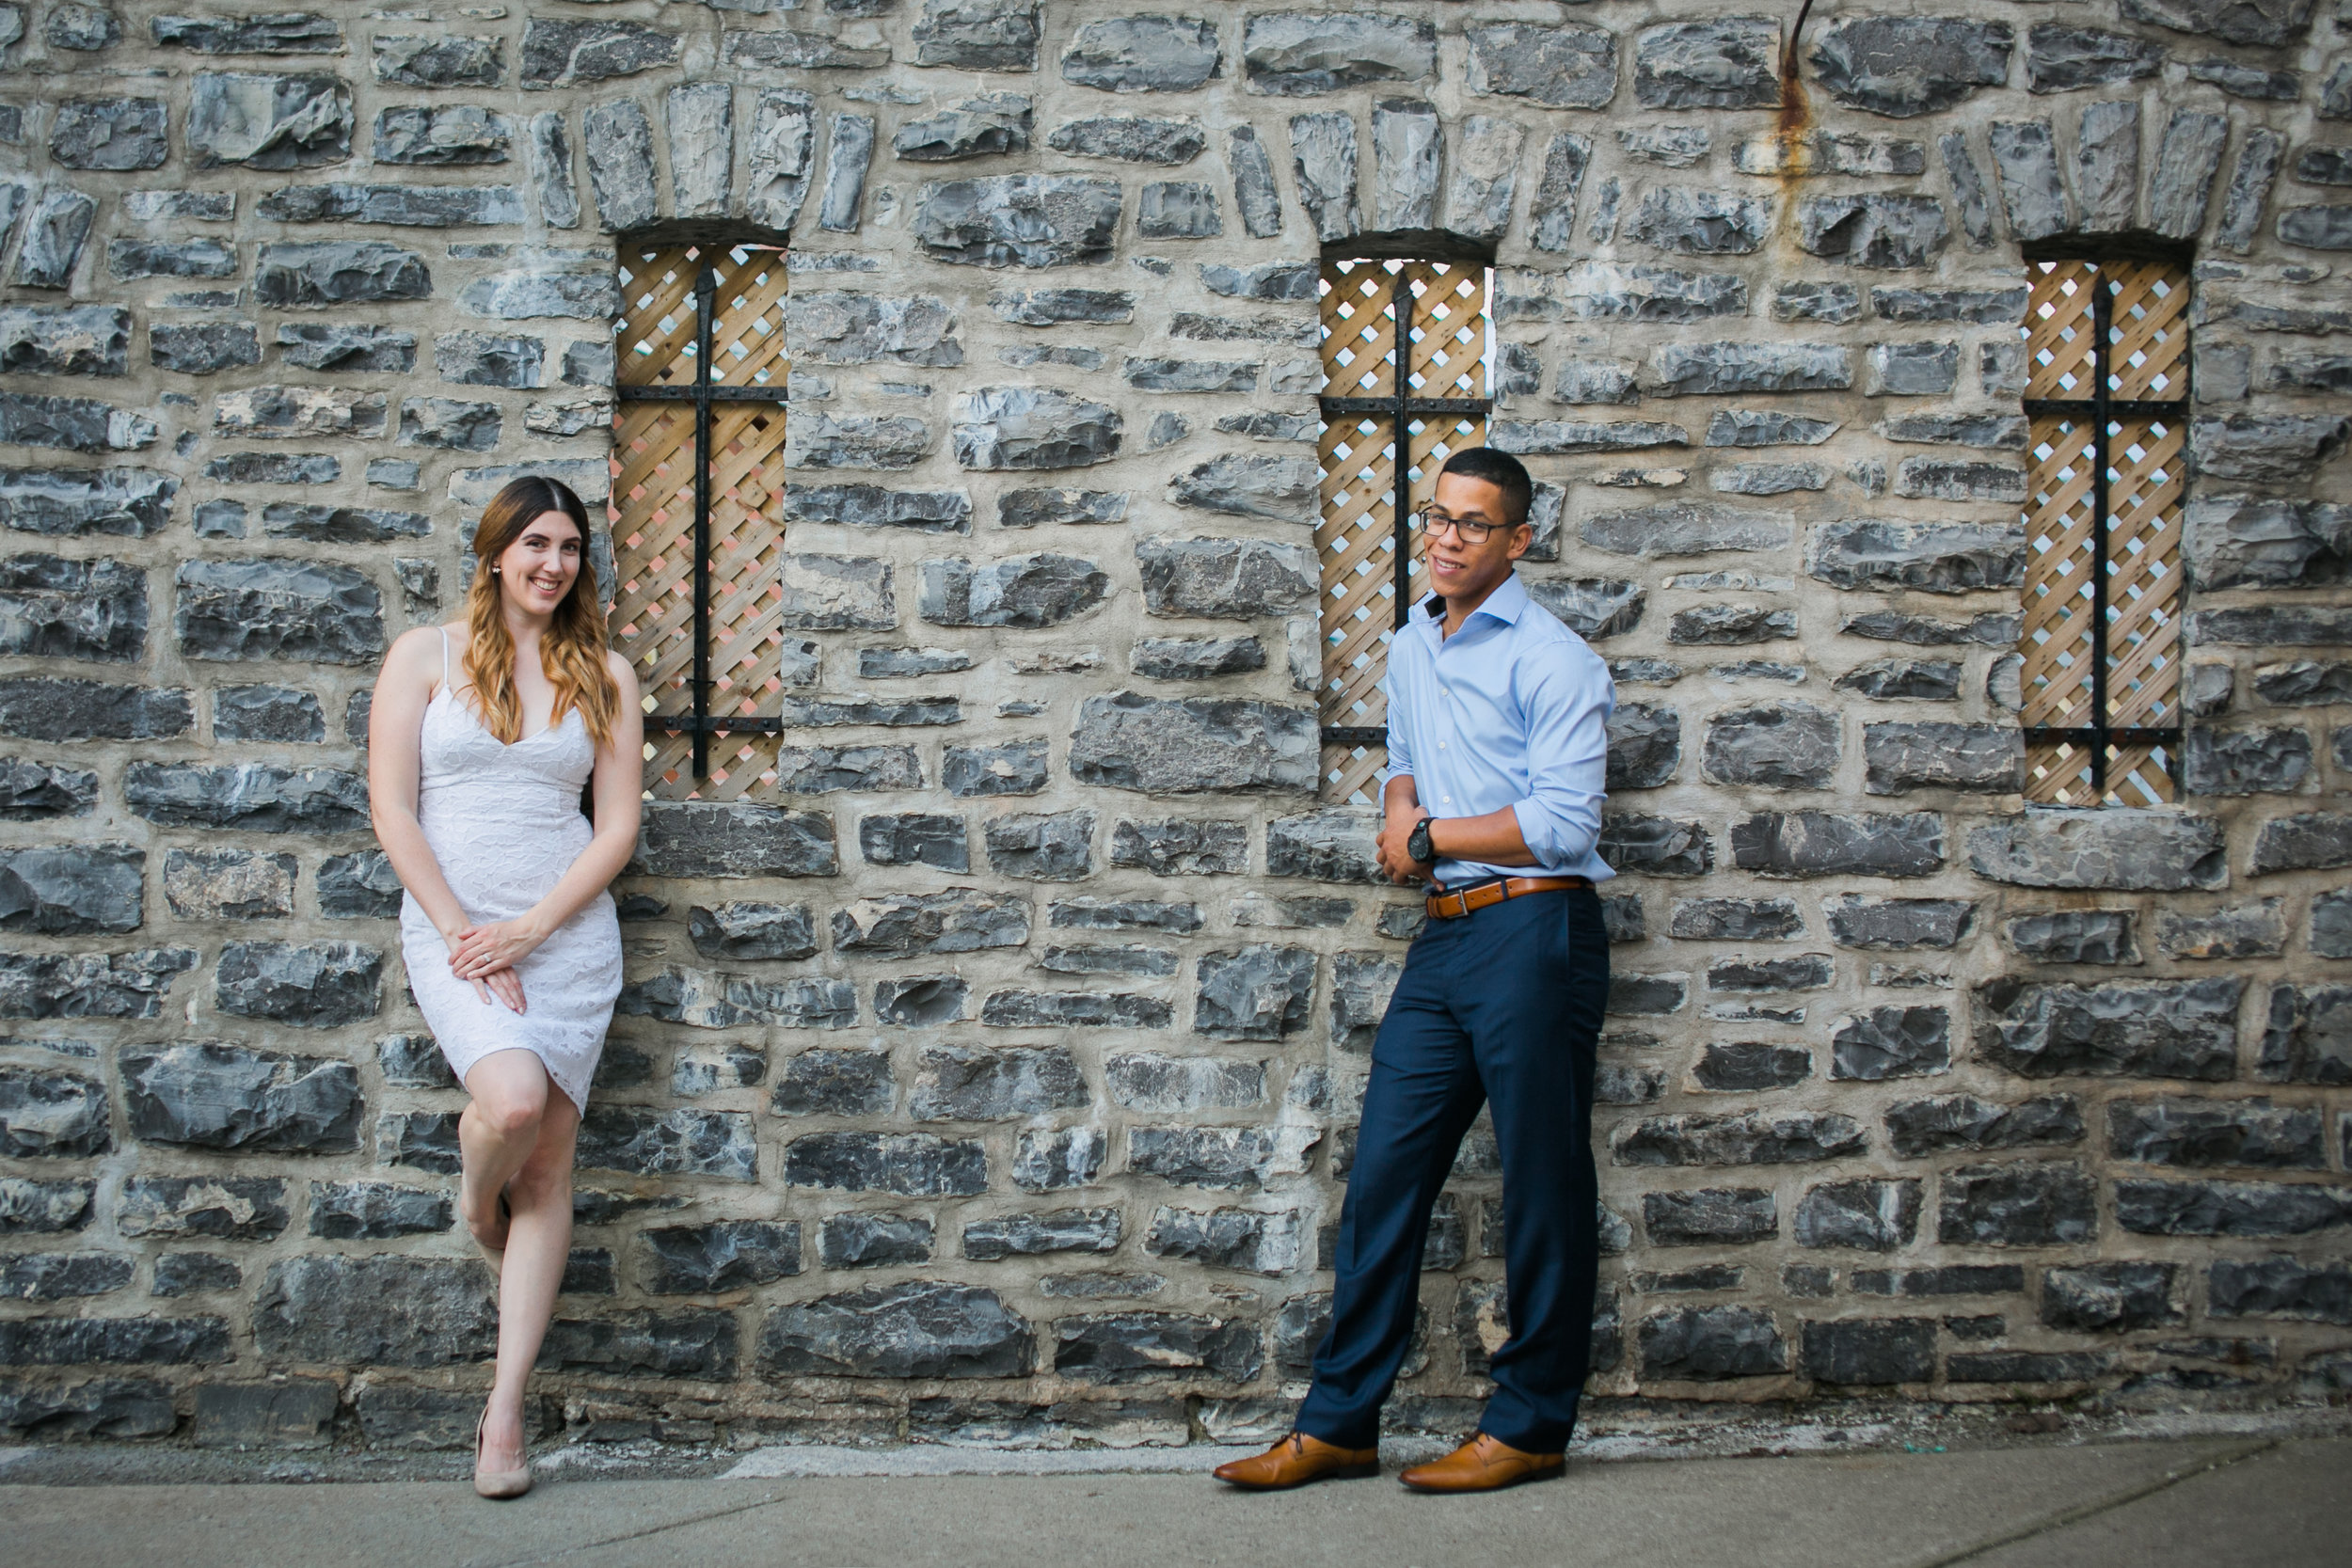 Vieux Old quebec engagement photos at sunset by Ness Photography.jpg